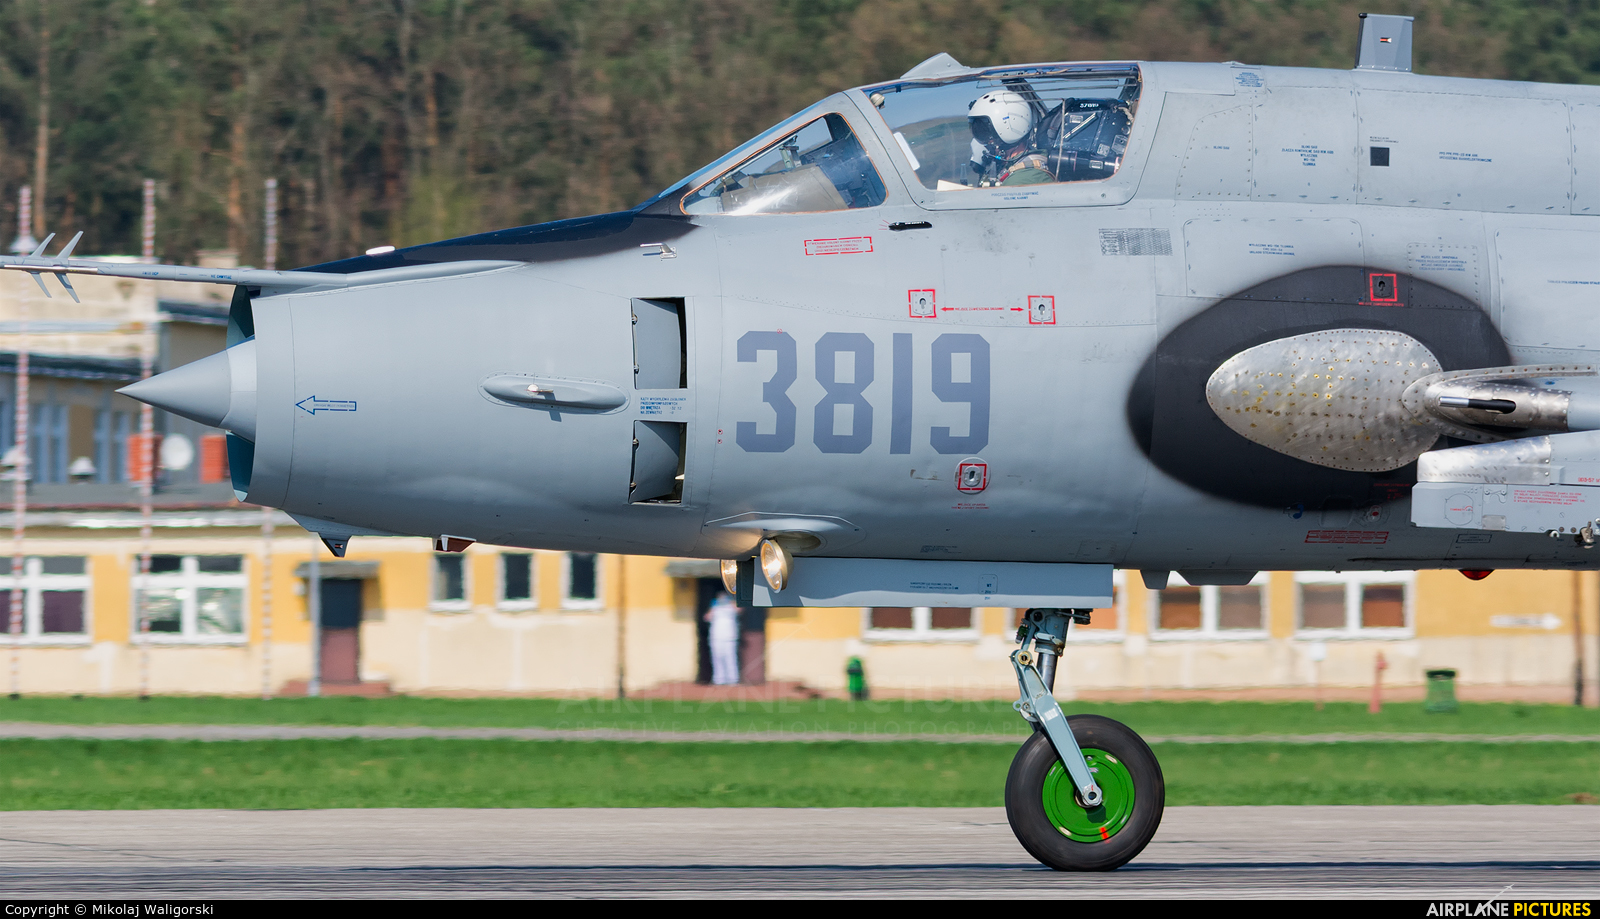 Poland - Air Force 3819 aircraft at Świdwin